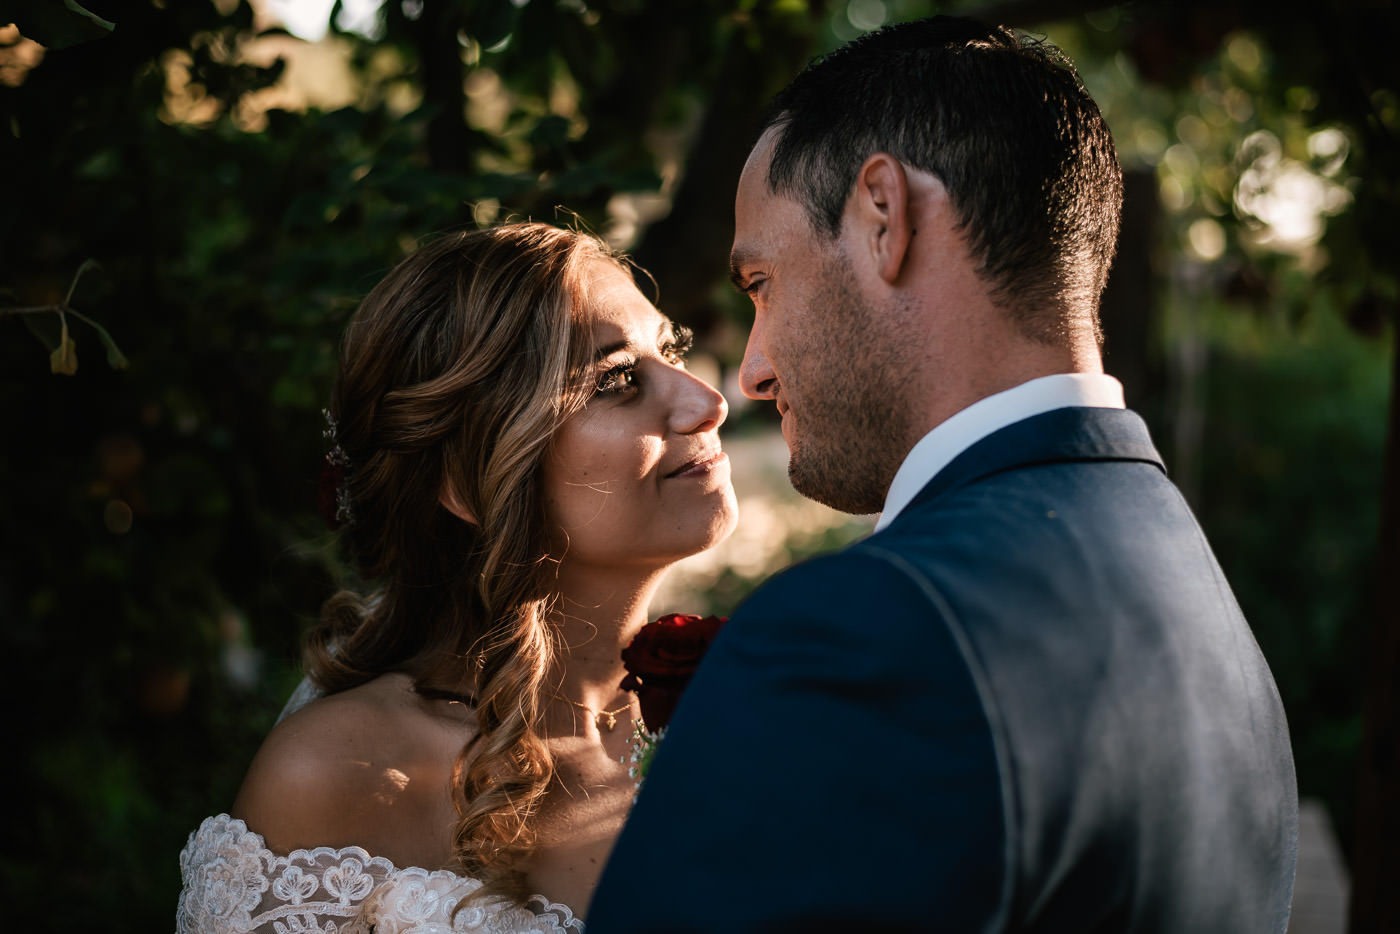 Couple stares deep into each others eyes for a sweet moment under the apple tree at The Homestead.